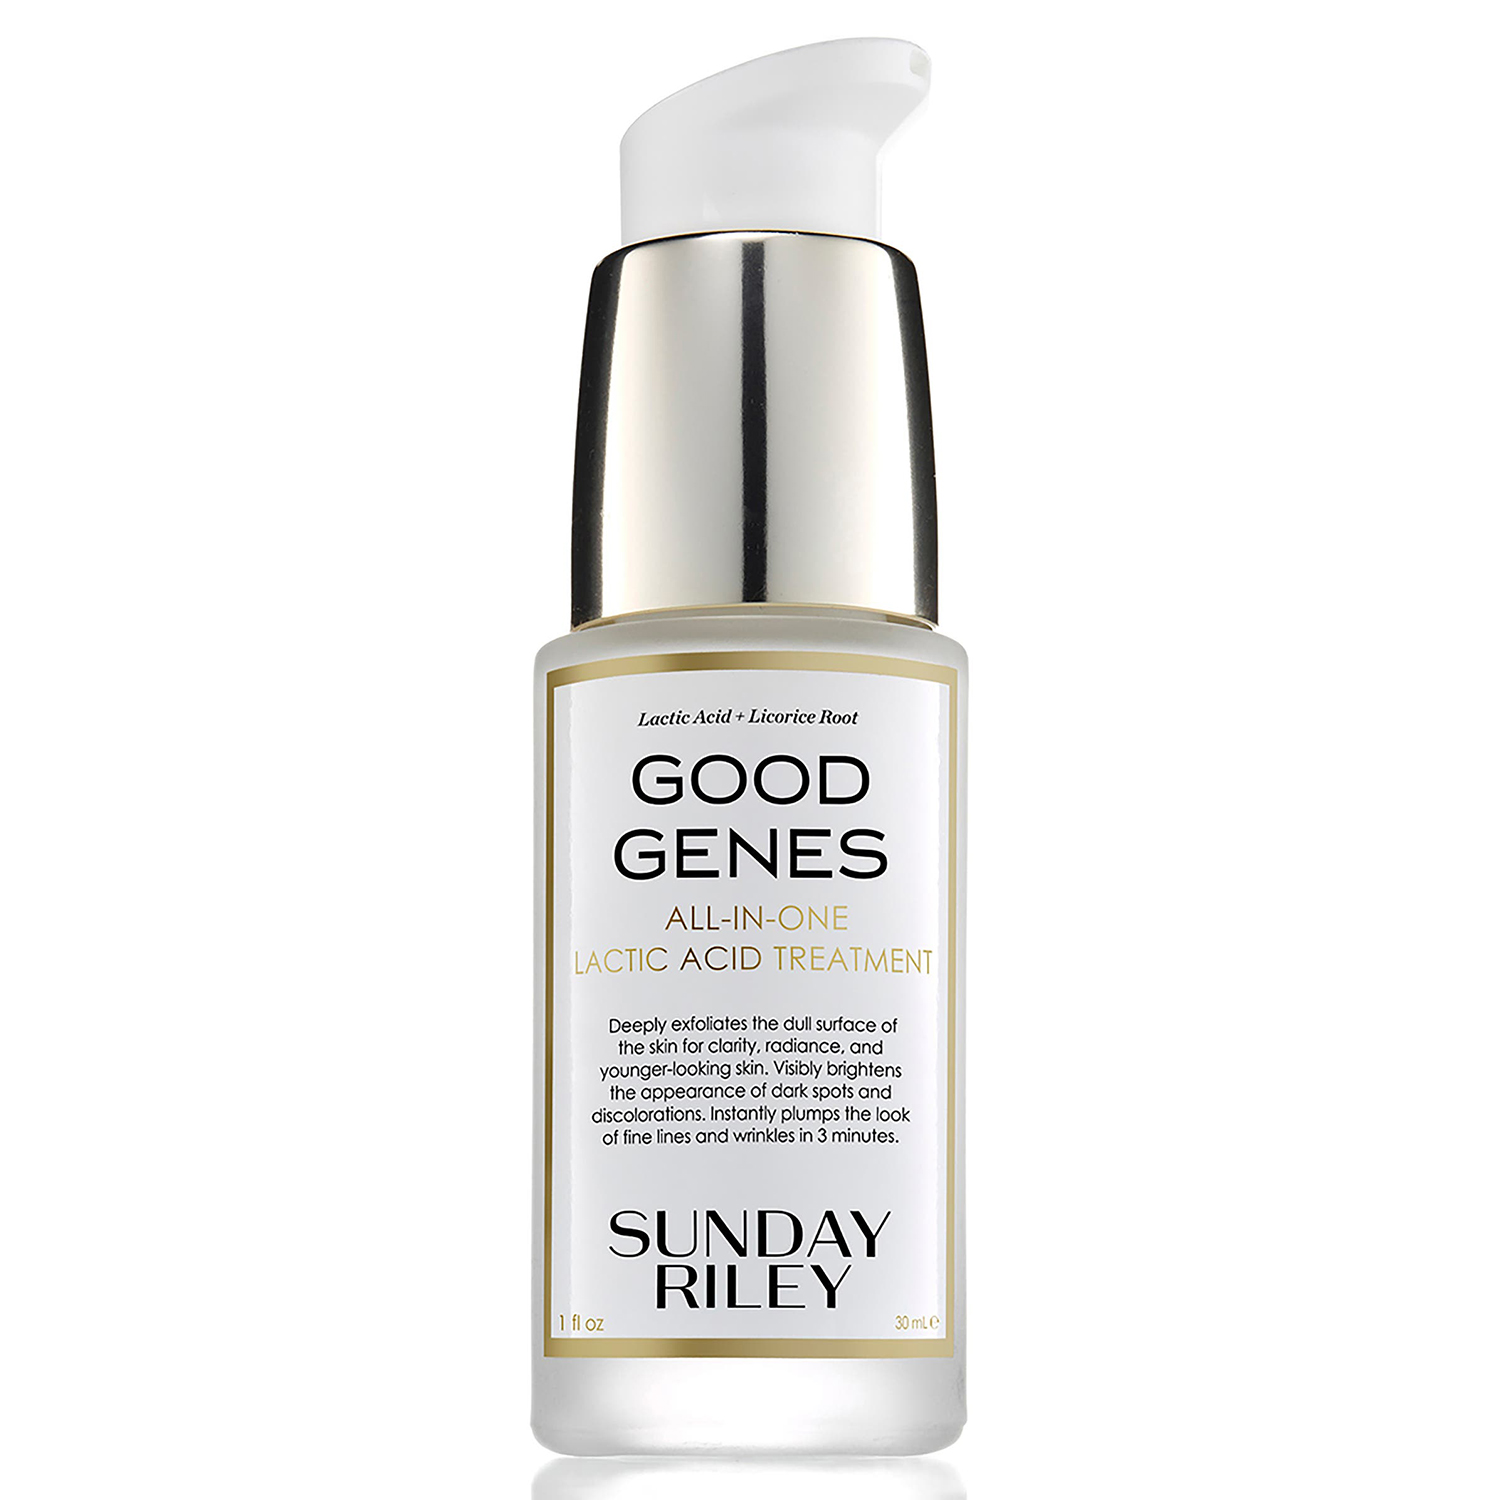 Good Genes All-in-One Lactic Acid Treatment SUNDAY RILEY